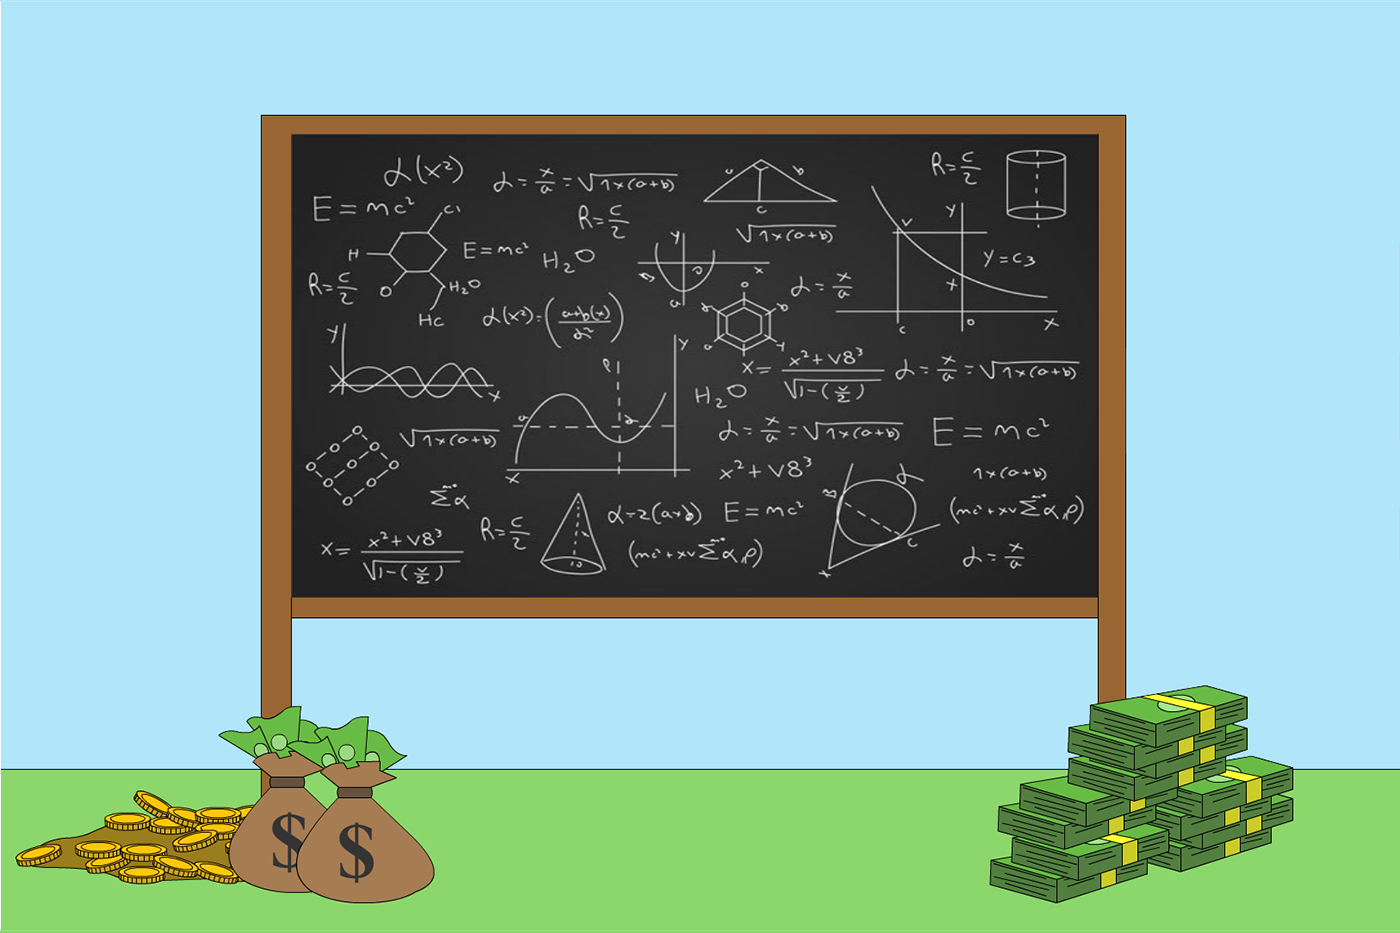 Original animation still of a black chalkboard filled with equations, sitting on a green field of grass, with bags of gold coins and stacks of cash on each side.